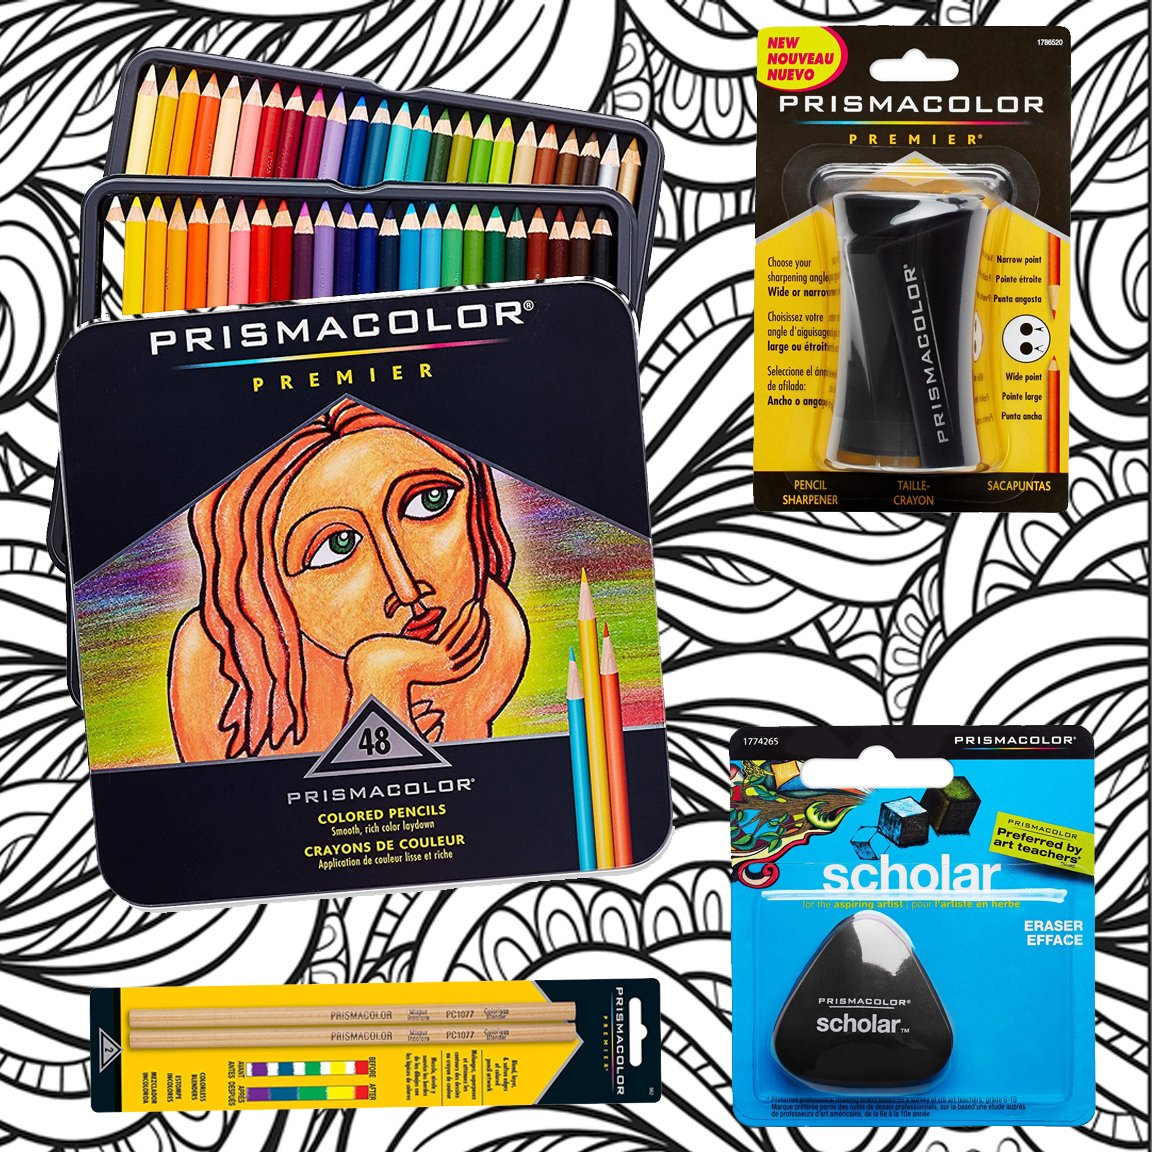 Prismacolor 48-Count Colored Pencils, Triangular Scholar Pencil Eraser, Premier Pencil Sharpener, Colorless Blender Pencils, and CSS Adult Coloring Book